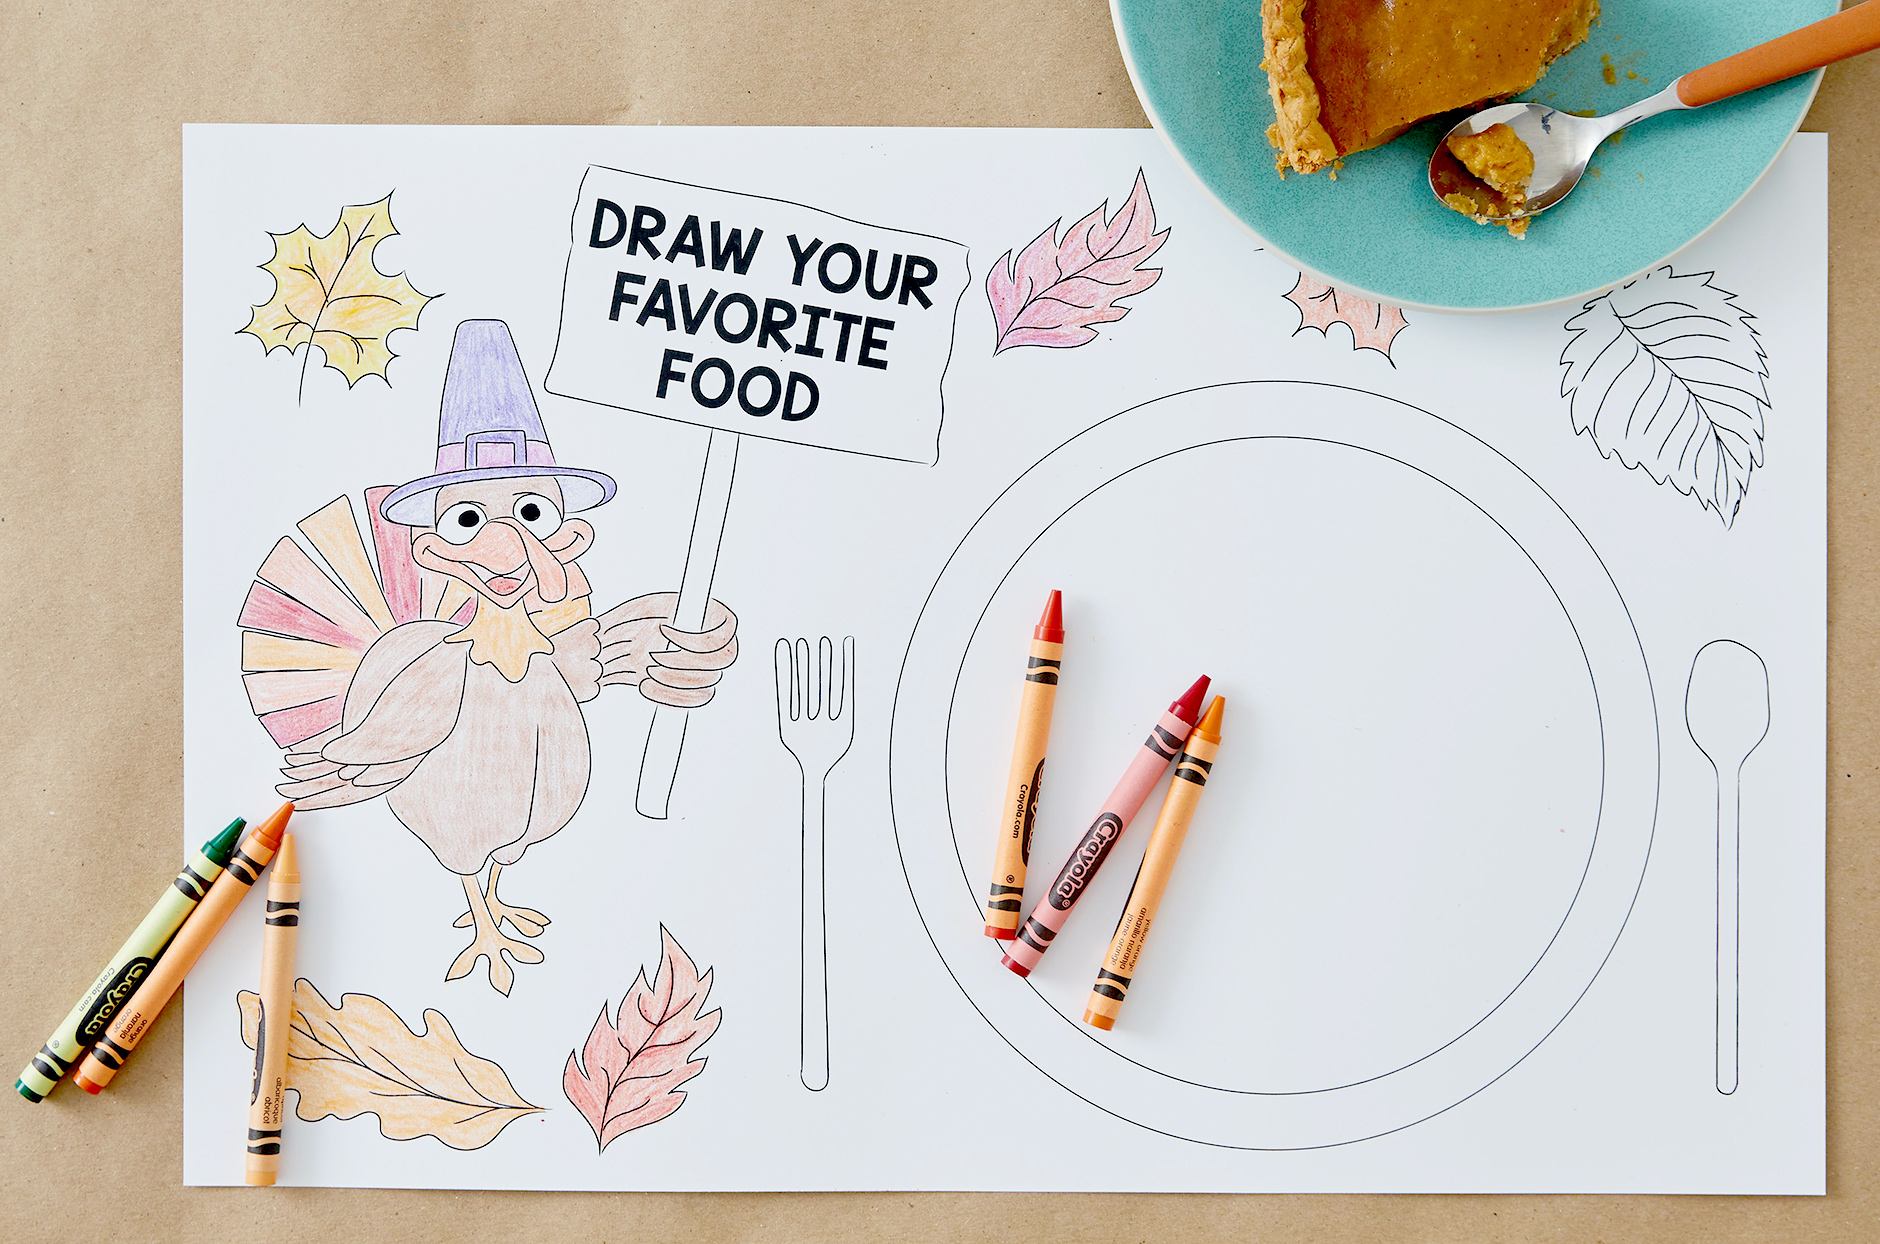 Colored placemat with crayons